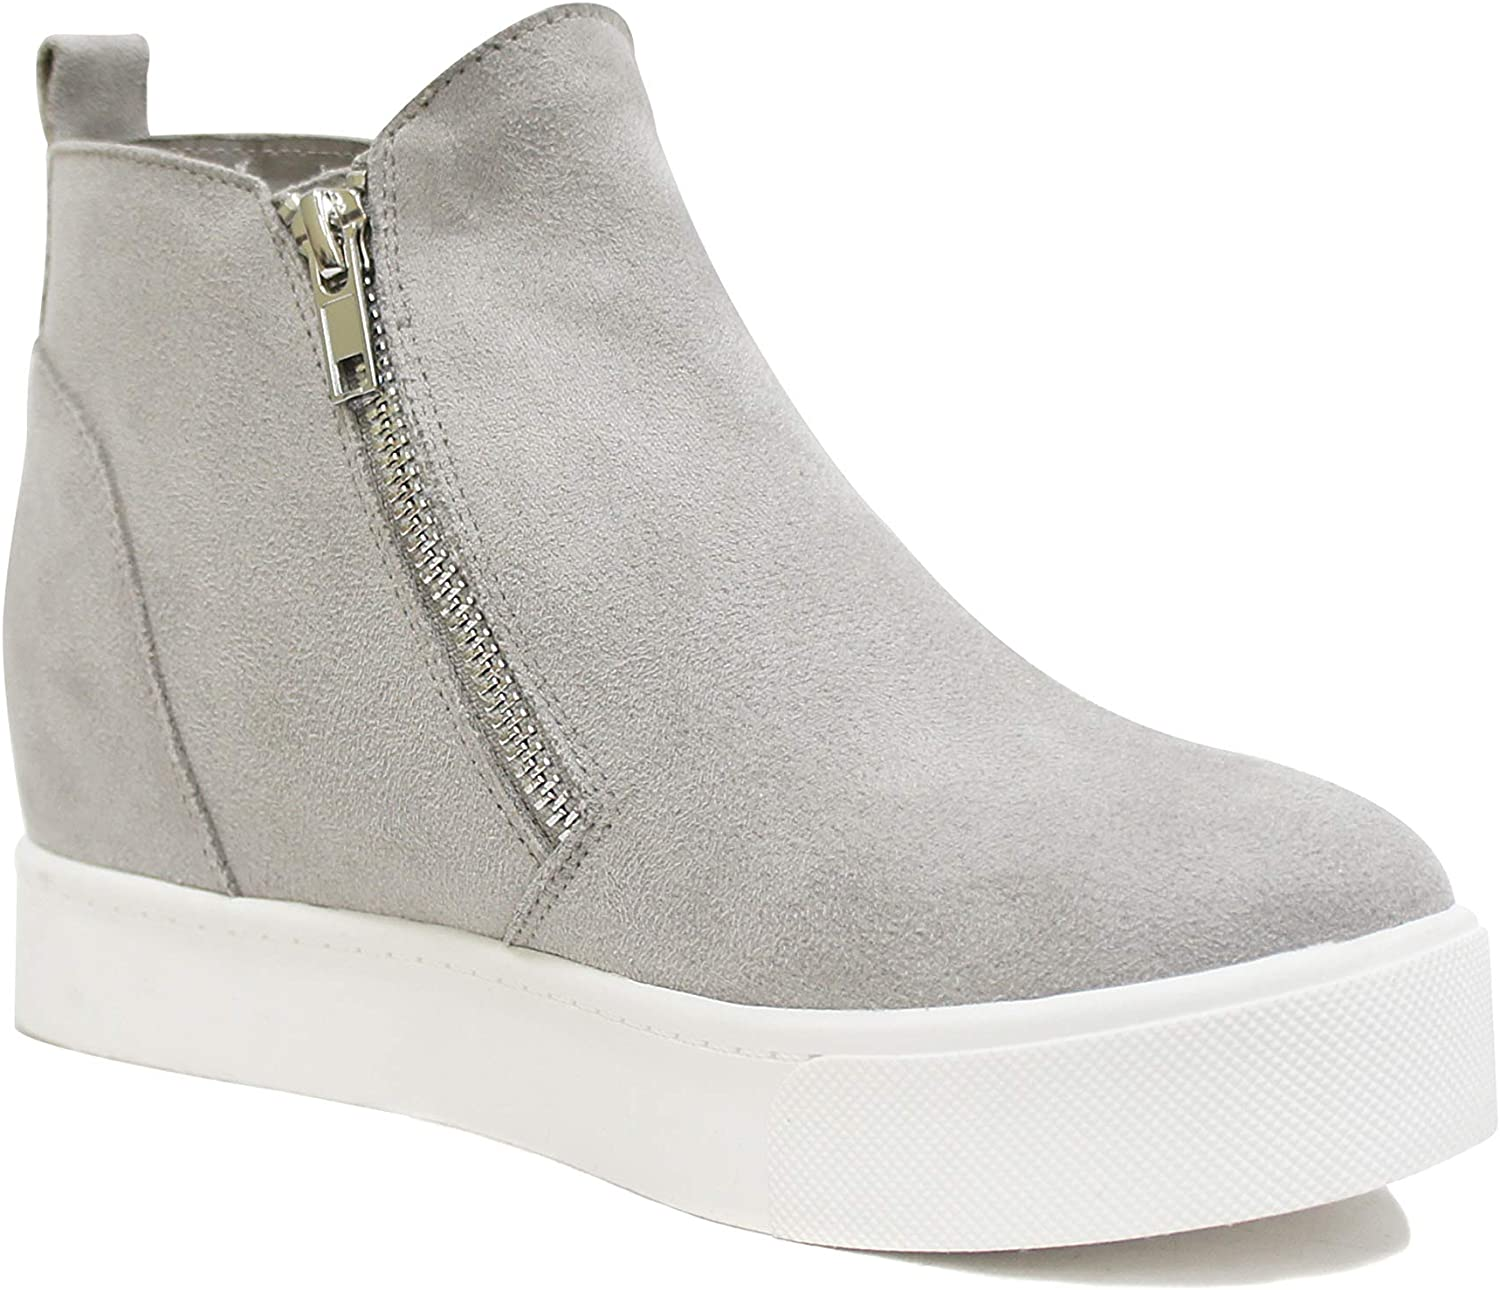 Soda Taylor Hidden Fahsion Wedge Ranking TOP19 Shoes Sneaker Indianapolis Mall Zipper Side